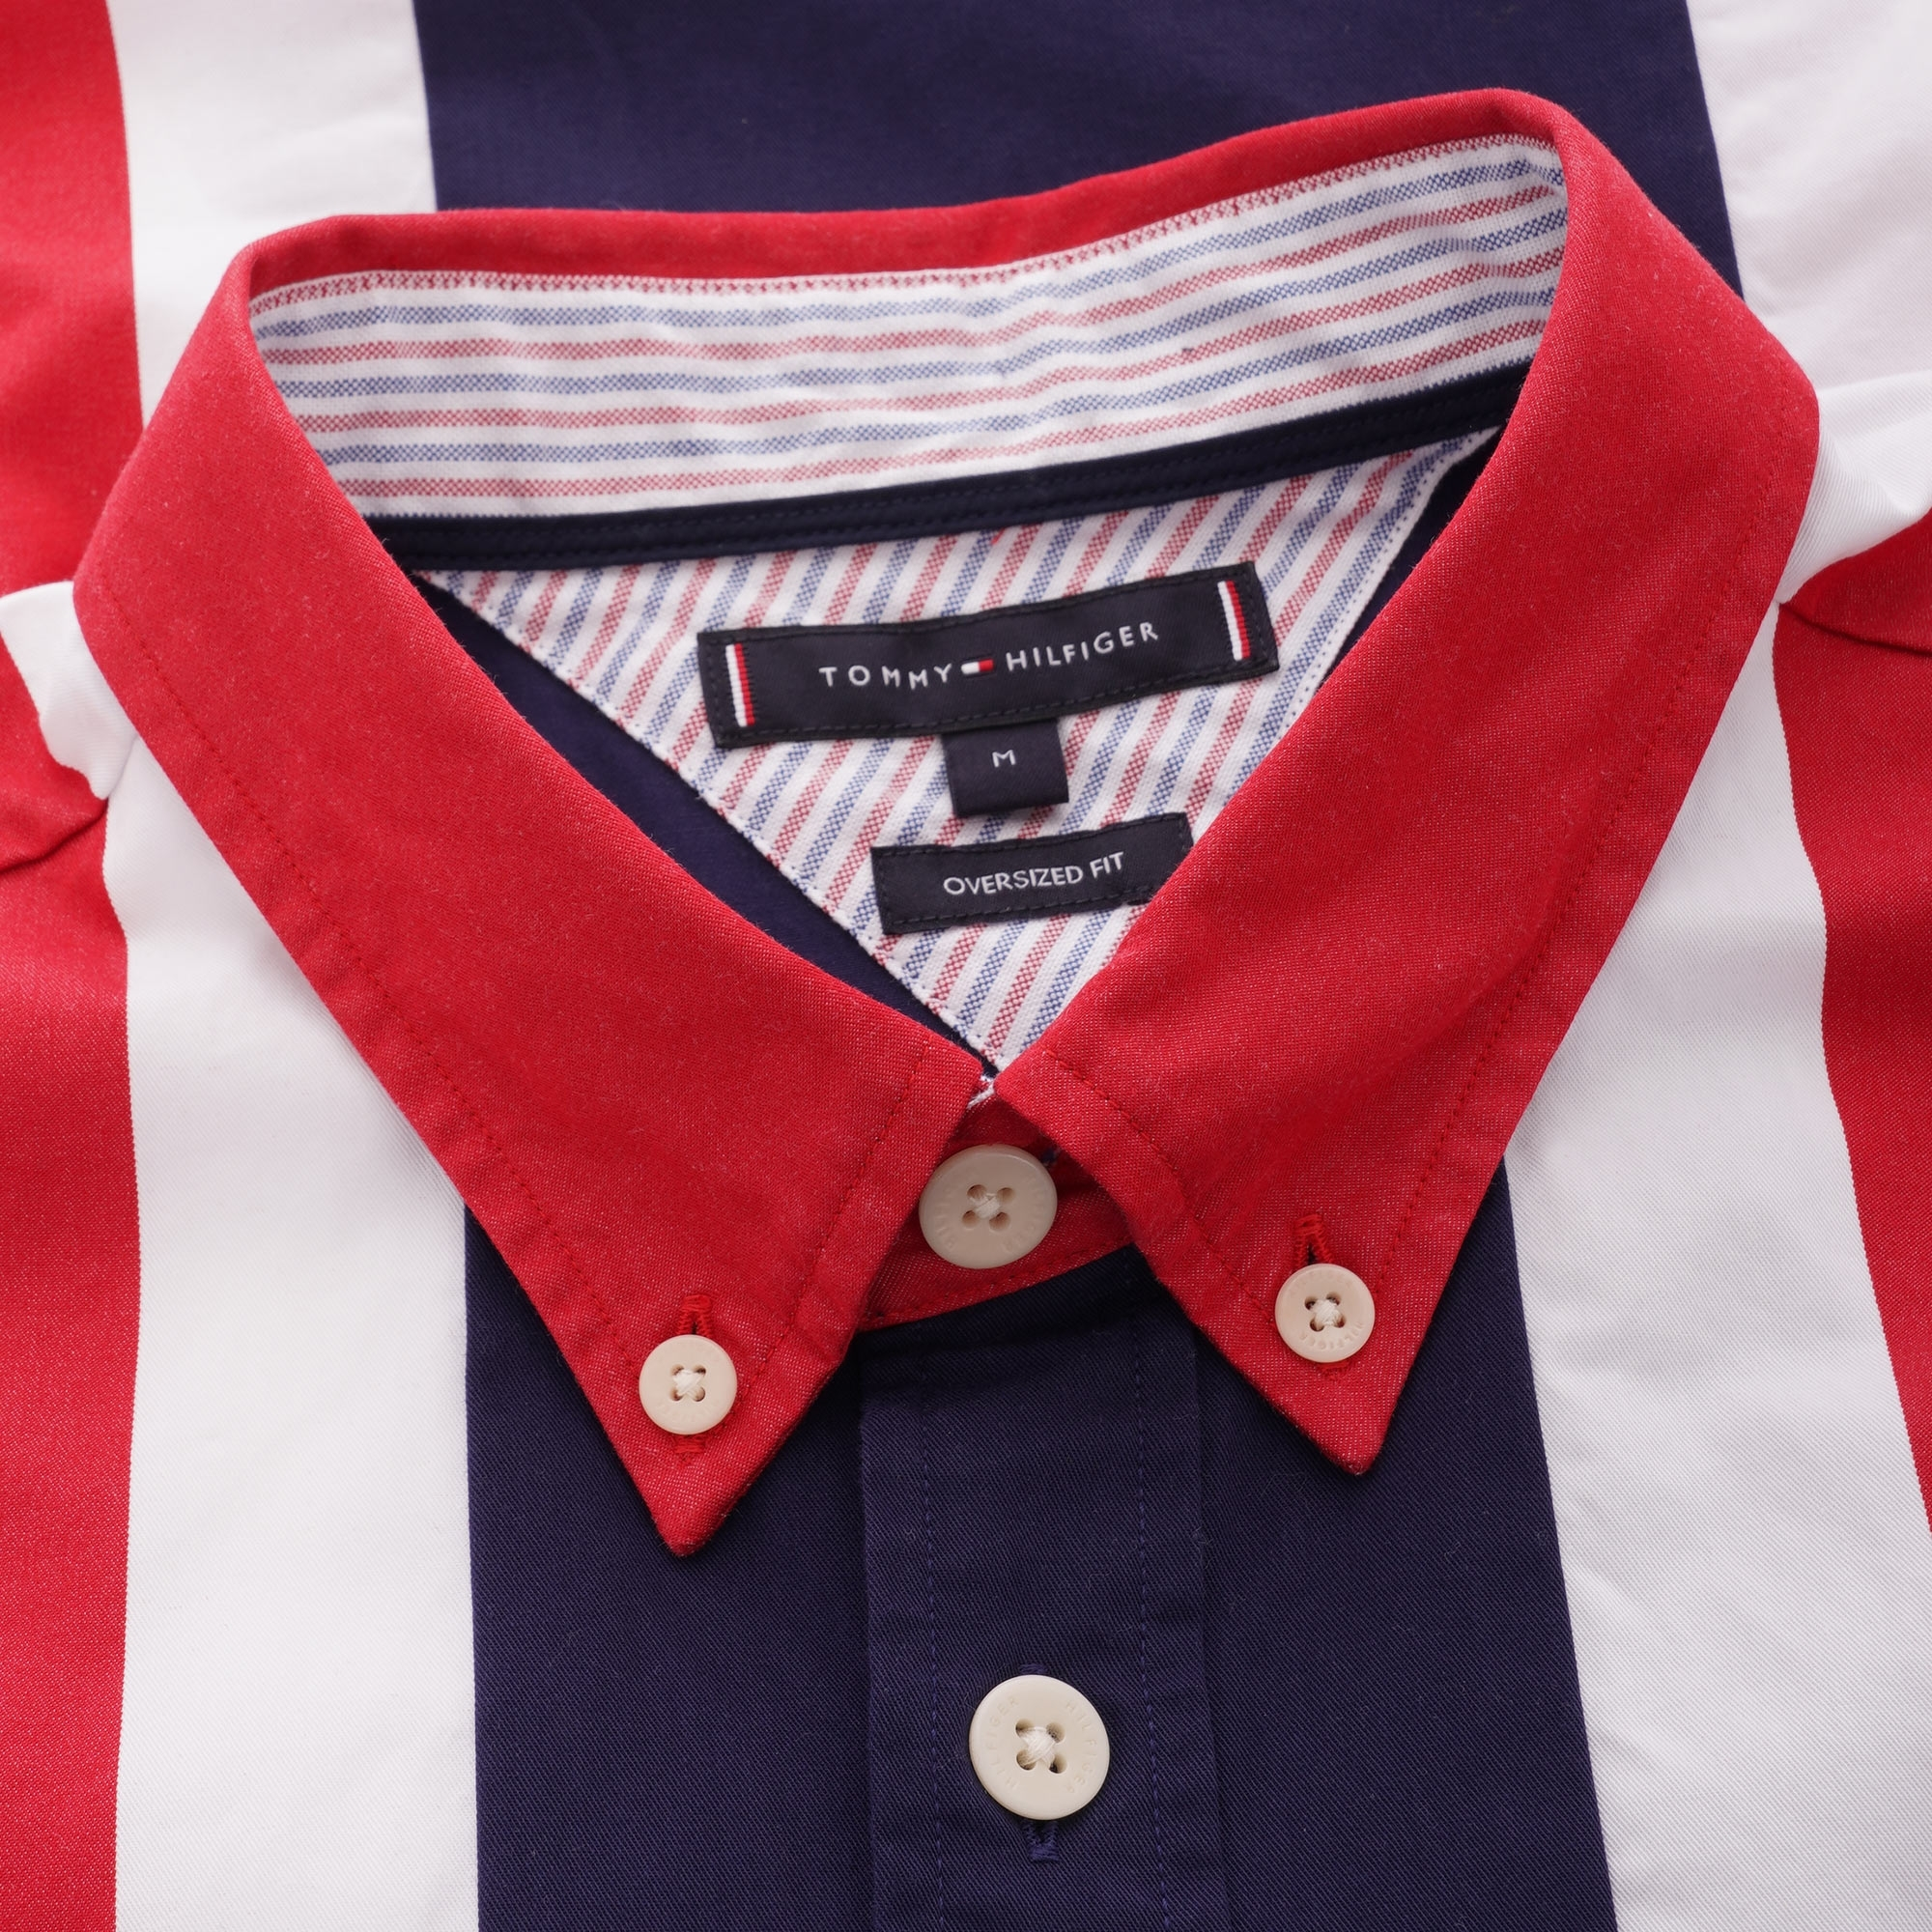 cbc9dc0f Tommy Hilfiger Icon Panelled Shirt   Peacoat   MWOMW10104